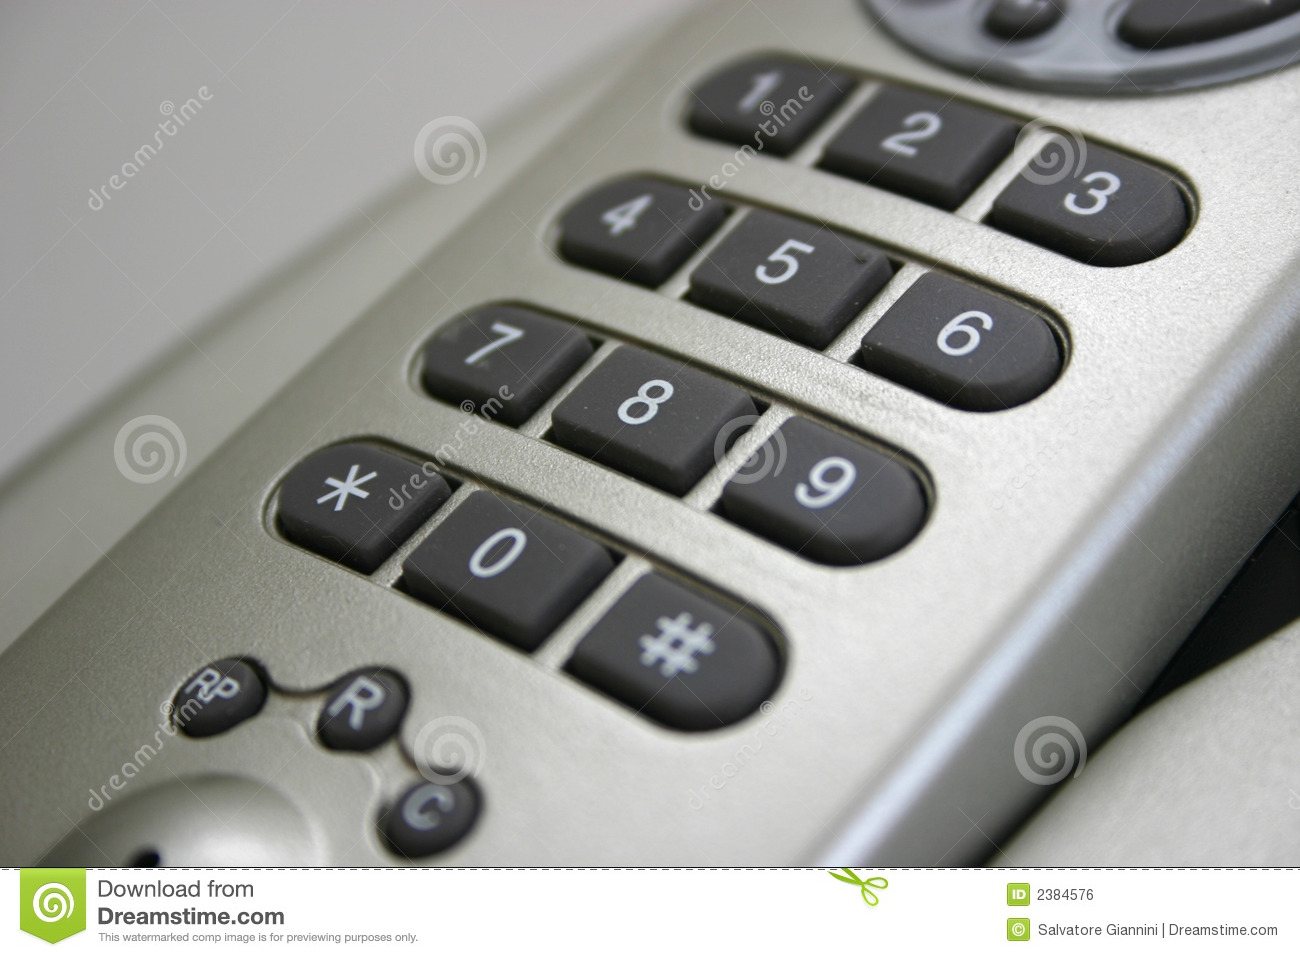 Wireless Telephone Number Pad Royalty Free Stock Image - Image: 2384576